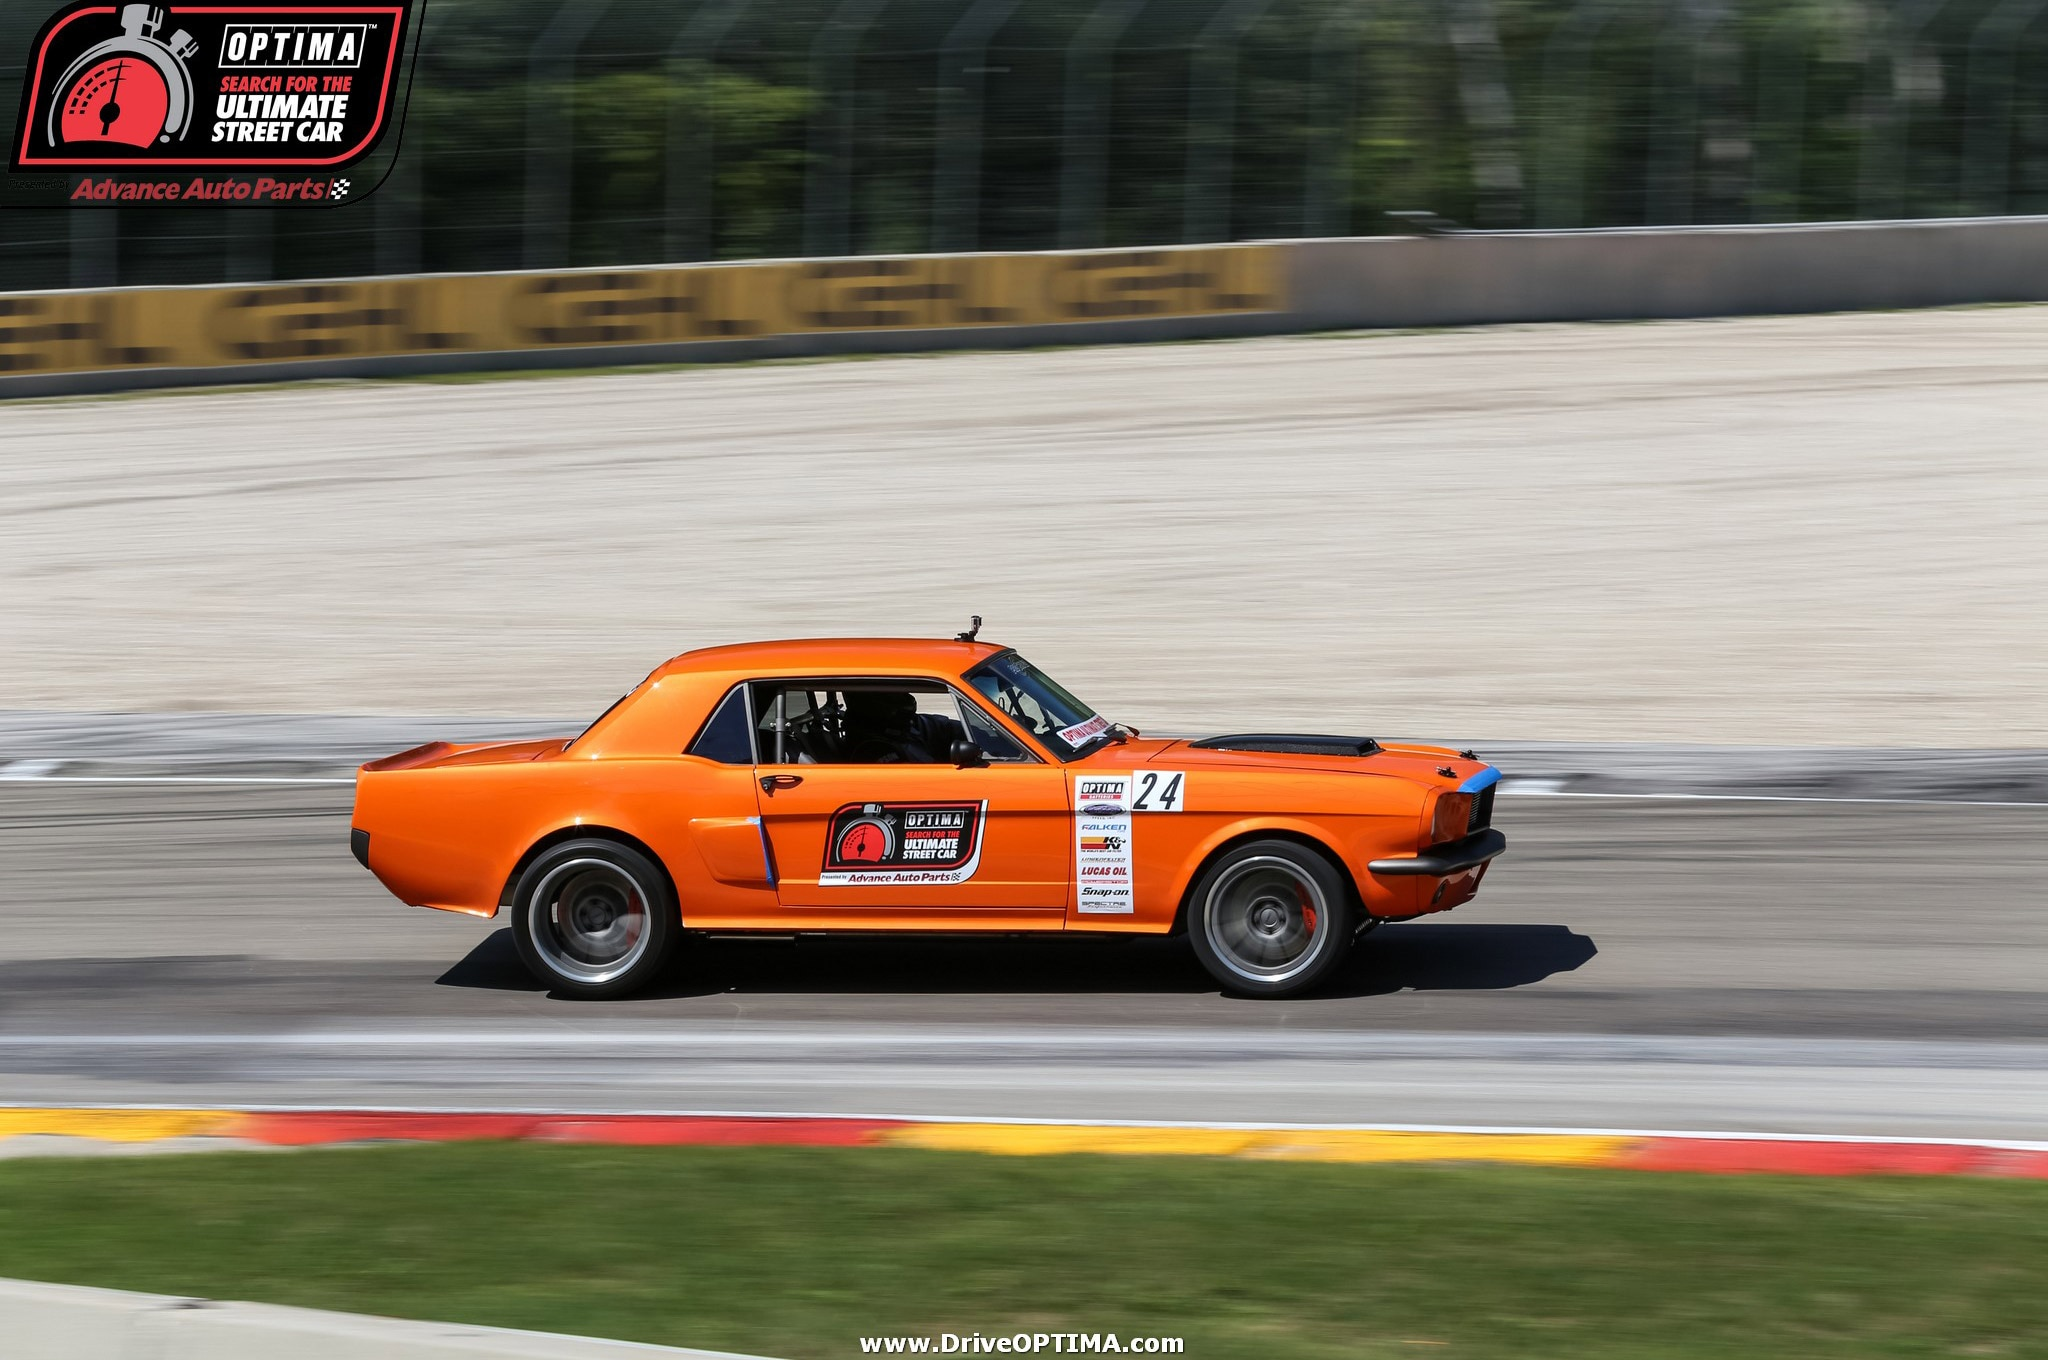 MM Chad Miller 1966 Ford Mustang Road America DriveOPTIMA 2016 11